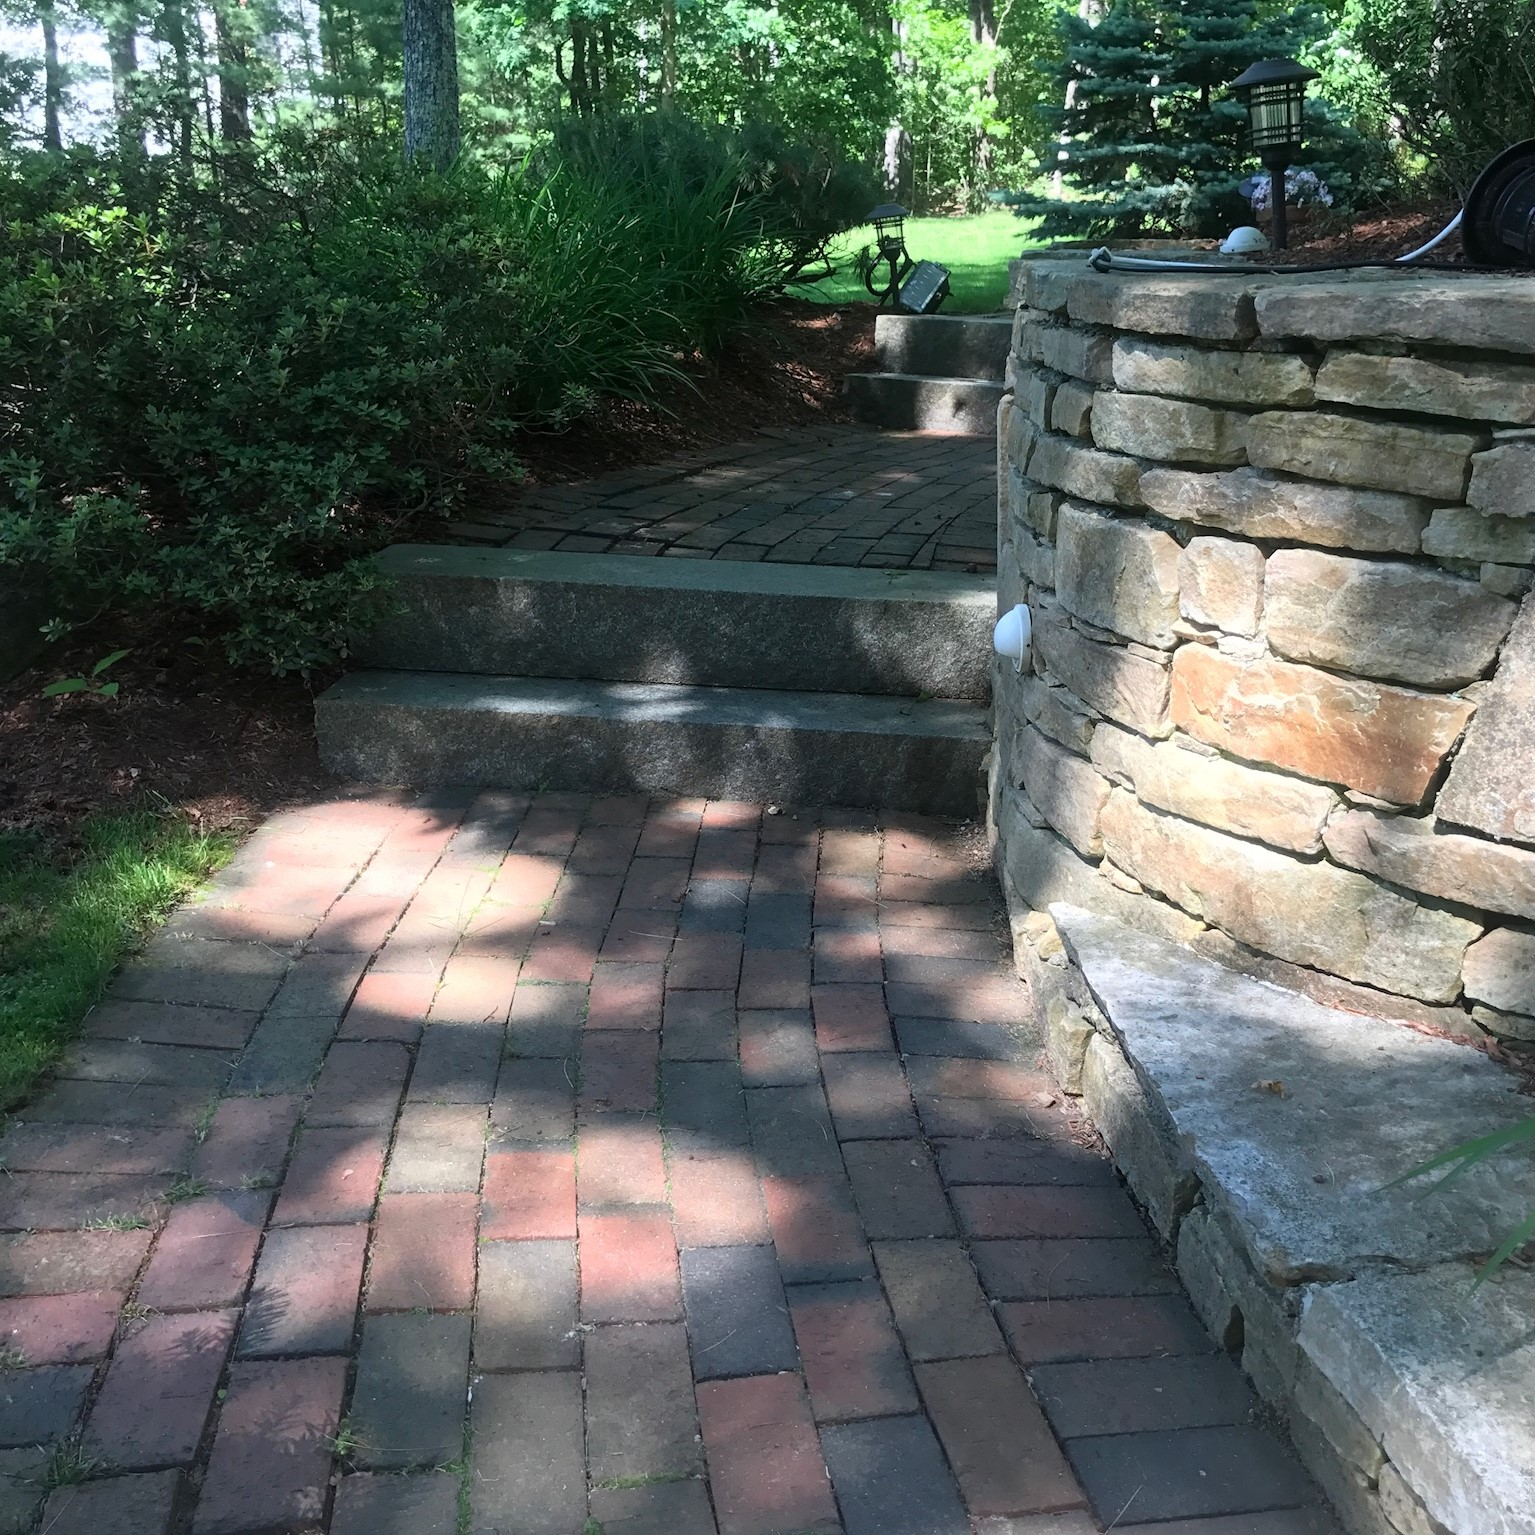 Brick Walway Repair Service in New Hampshire